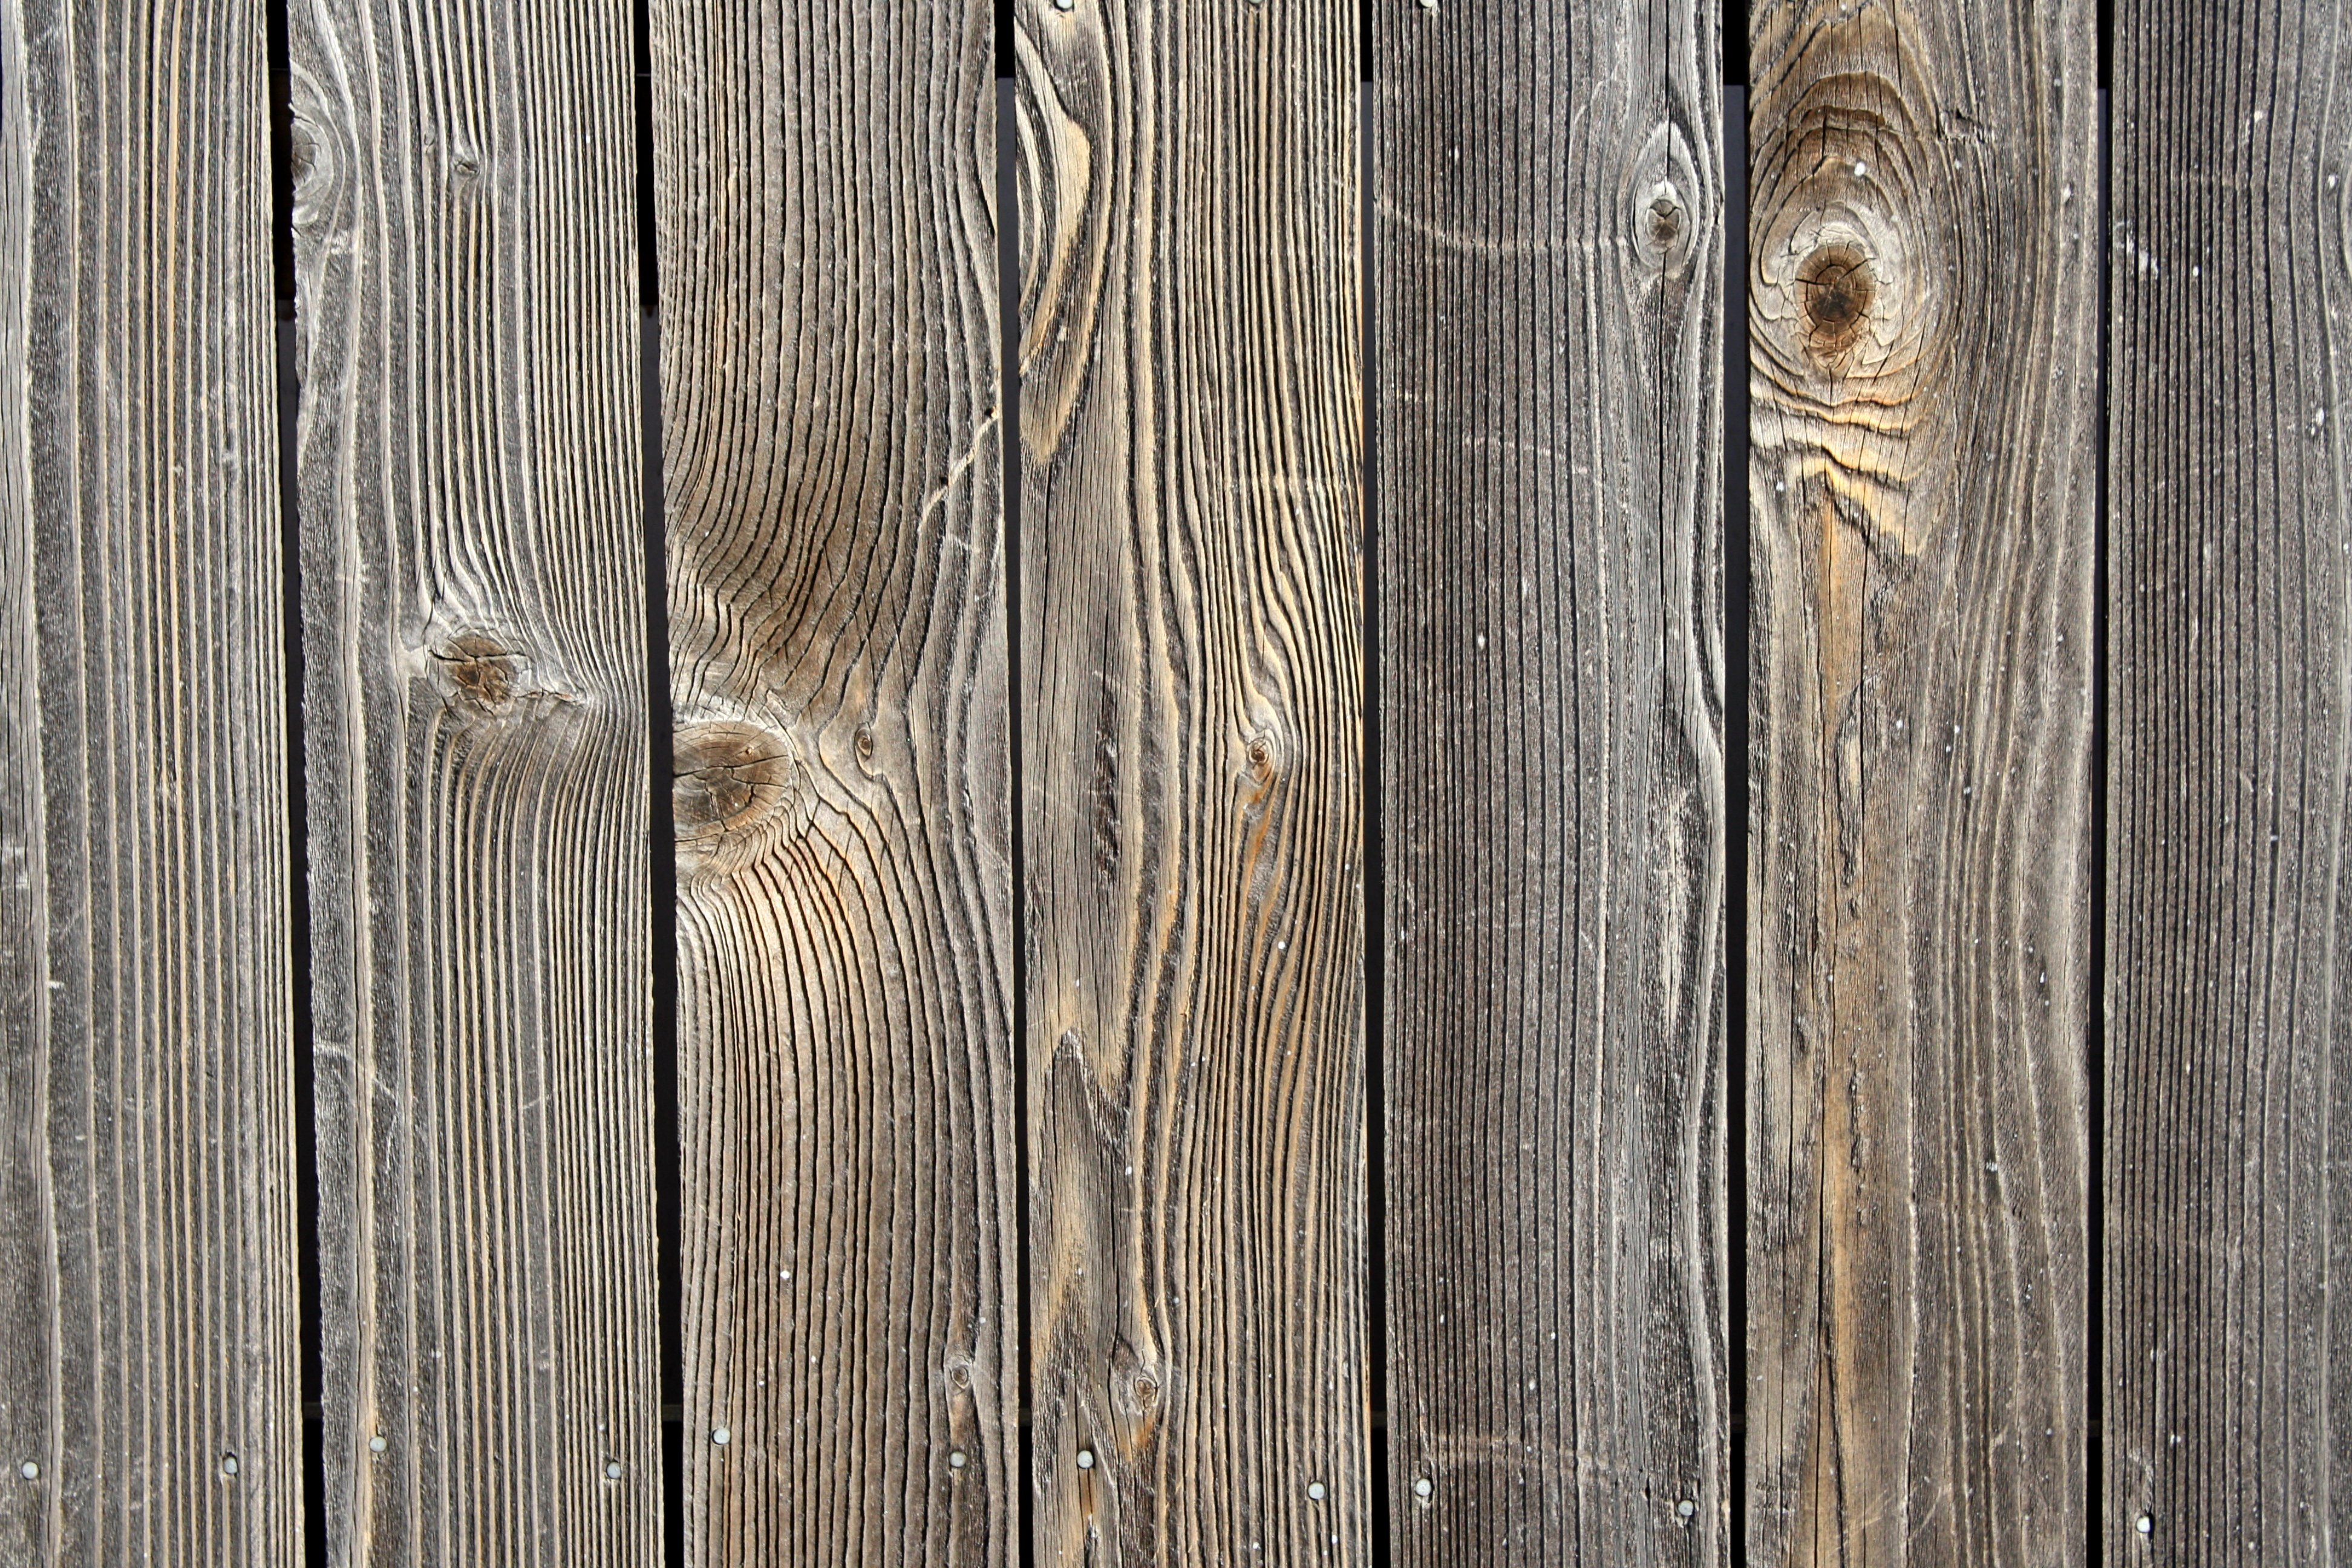 Weathered Wooden Boards Texture Picture | Free Photograph | Photos ...